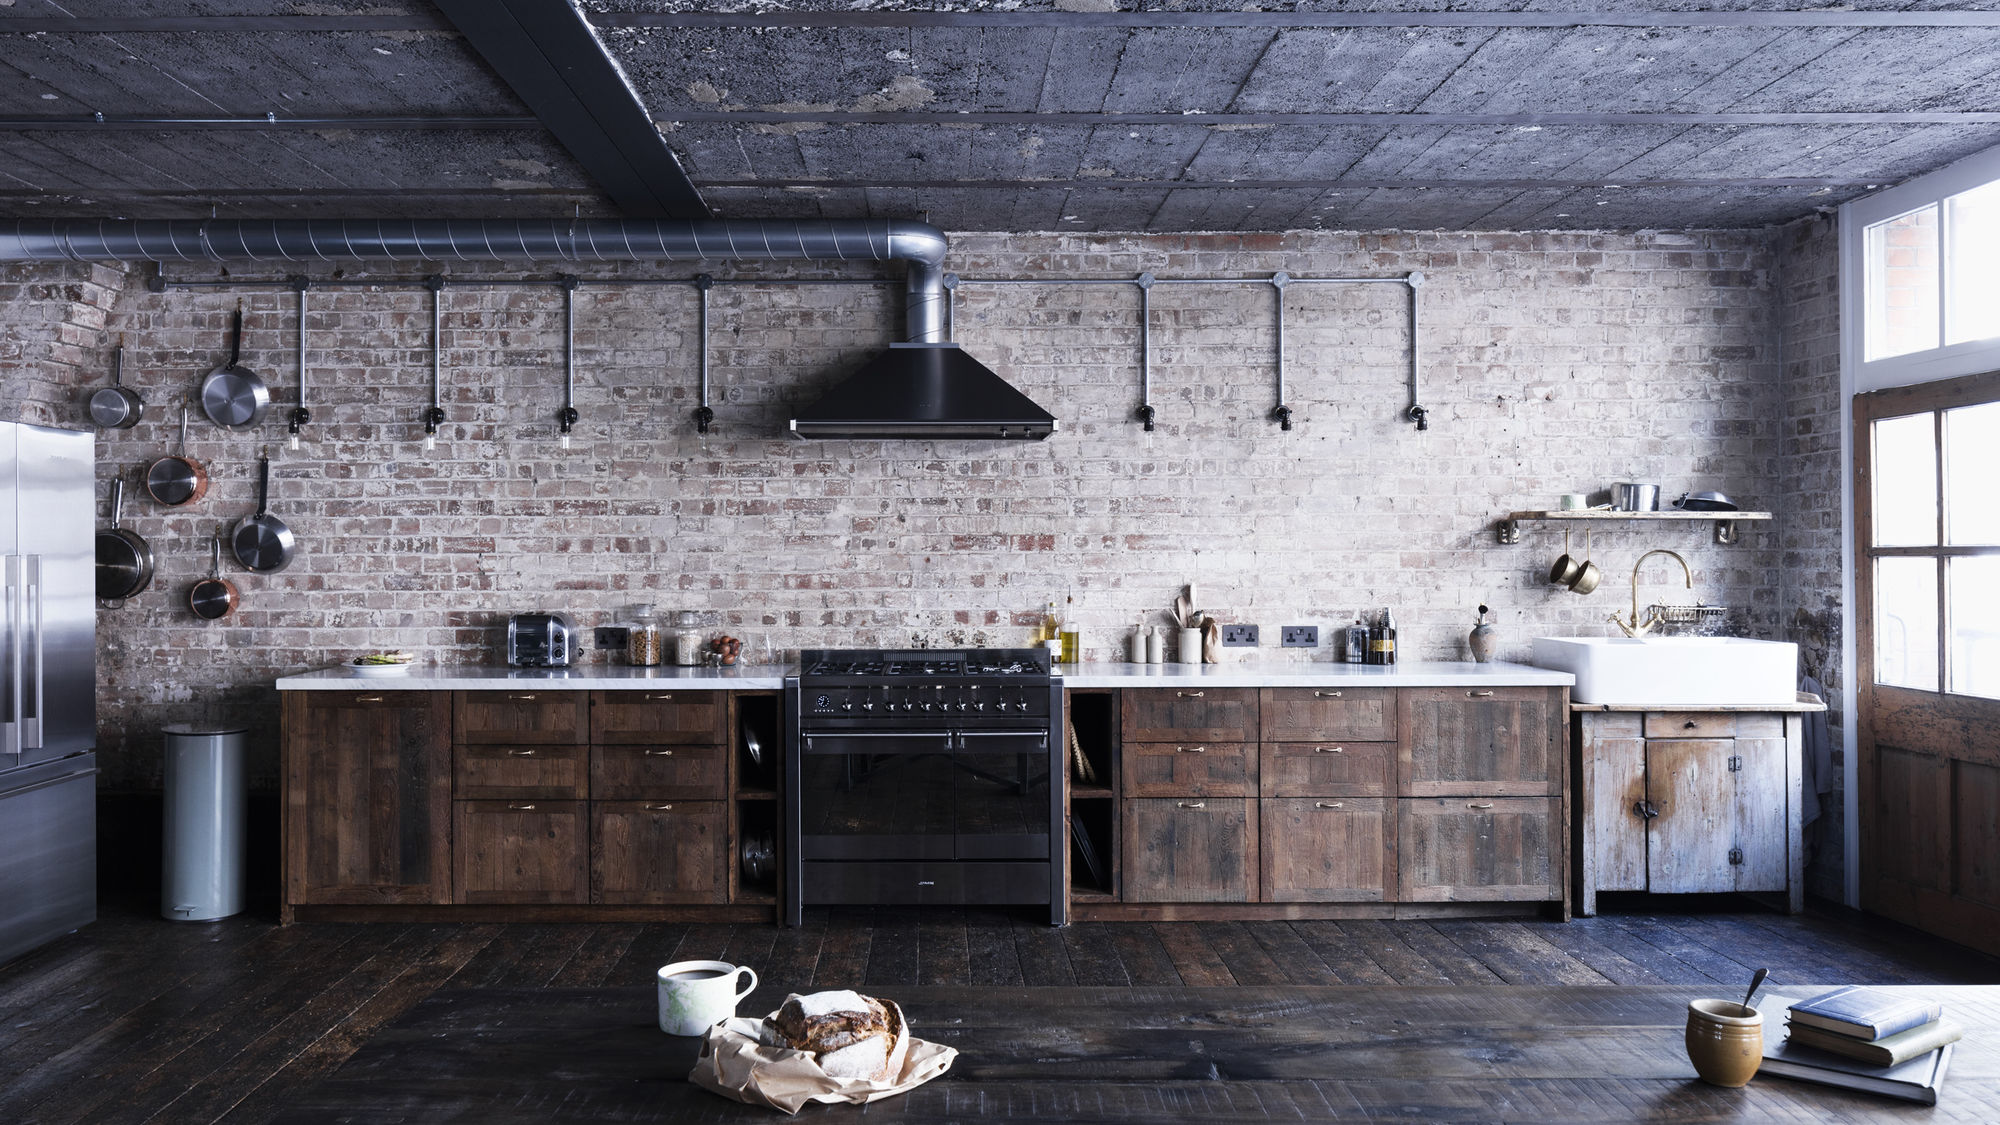 Mark lewis interior design hoxton square loft kitchen brick reclaimed wood rory gardener photo 2